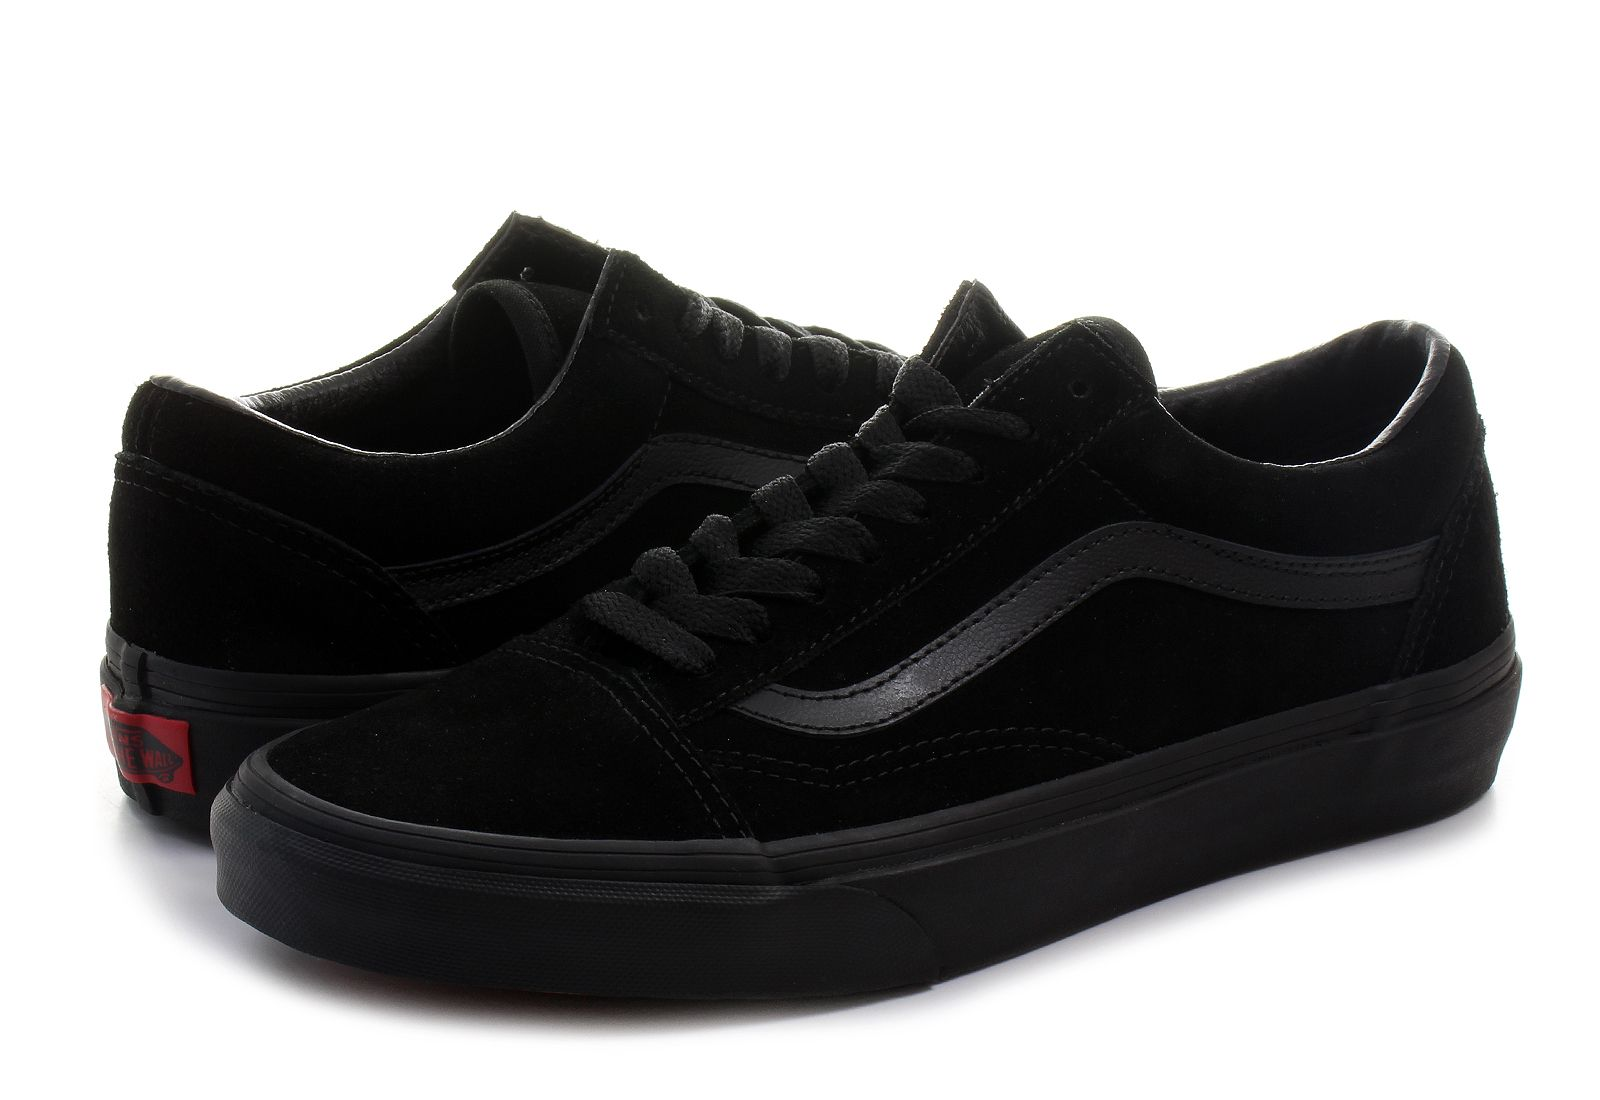 vans old skool czarne 39